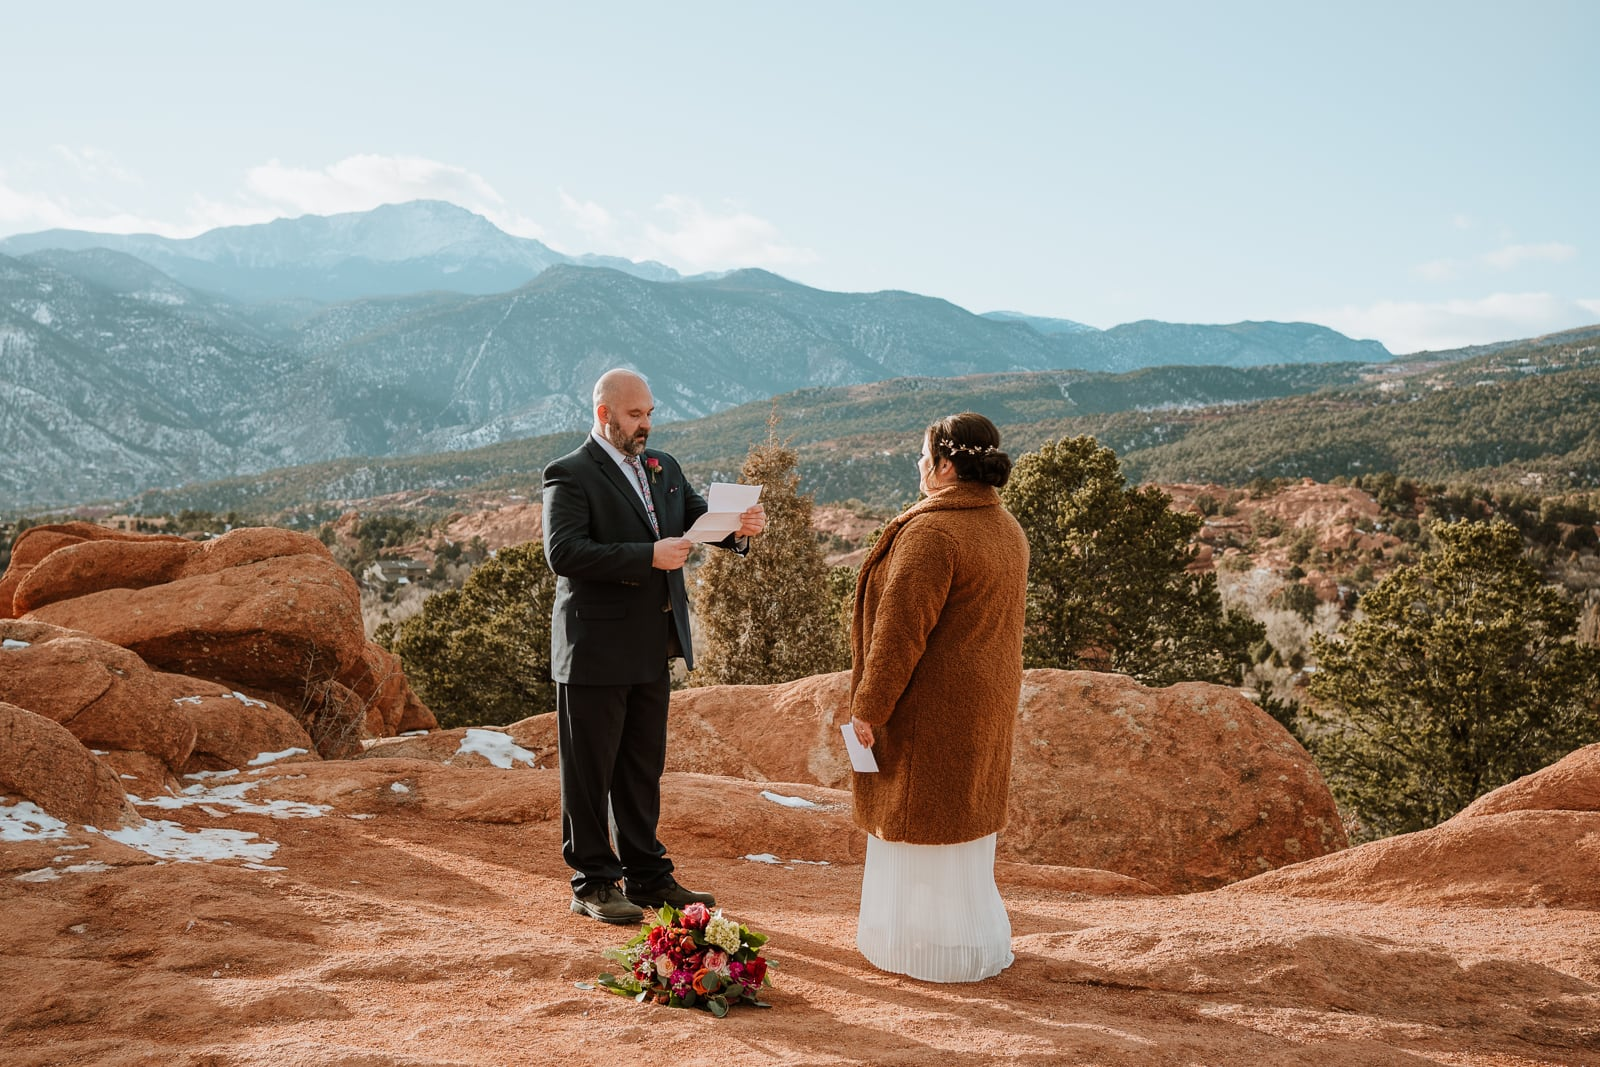 Bride and groom read their vows at High Point Overlook for this sunset elopement in December at Garden of the Gods